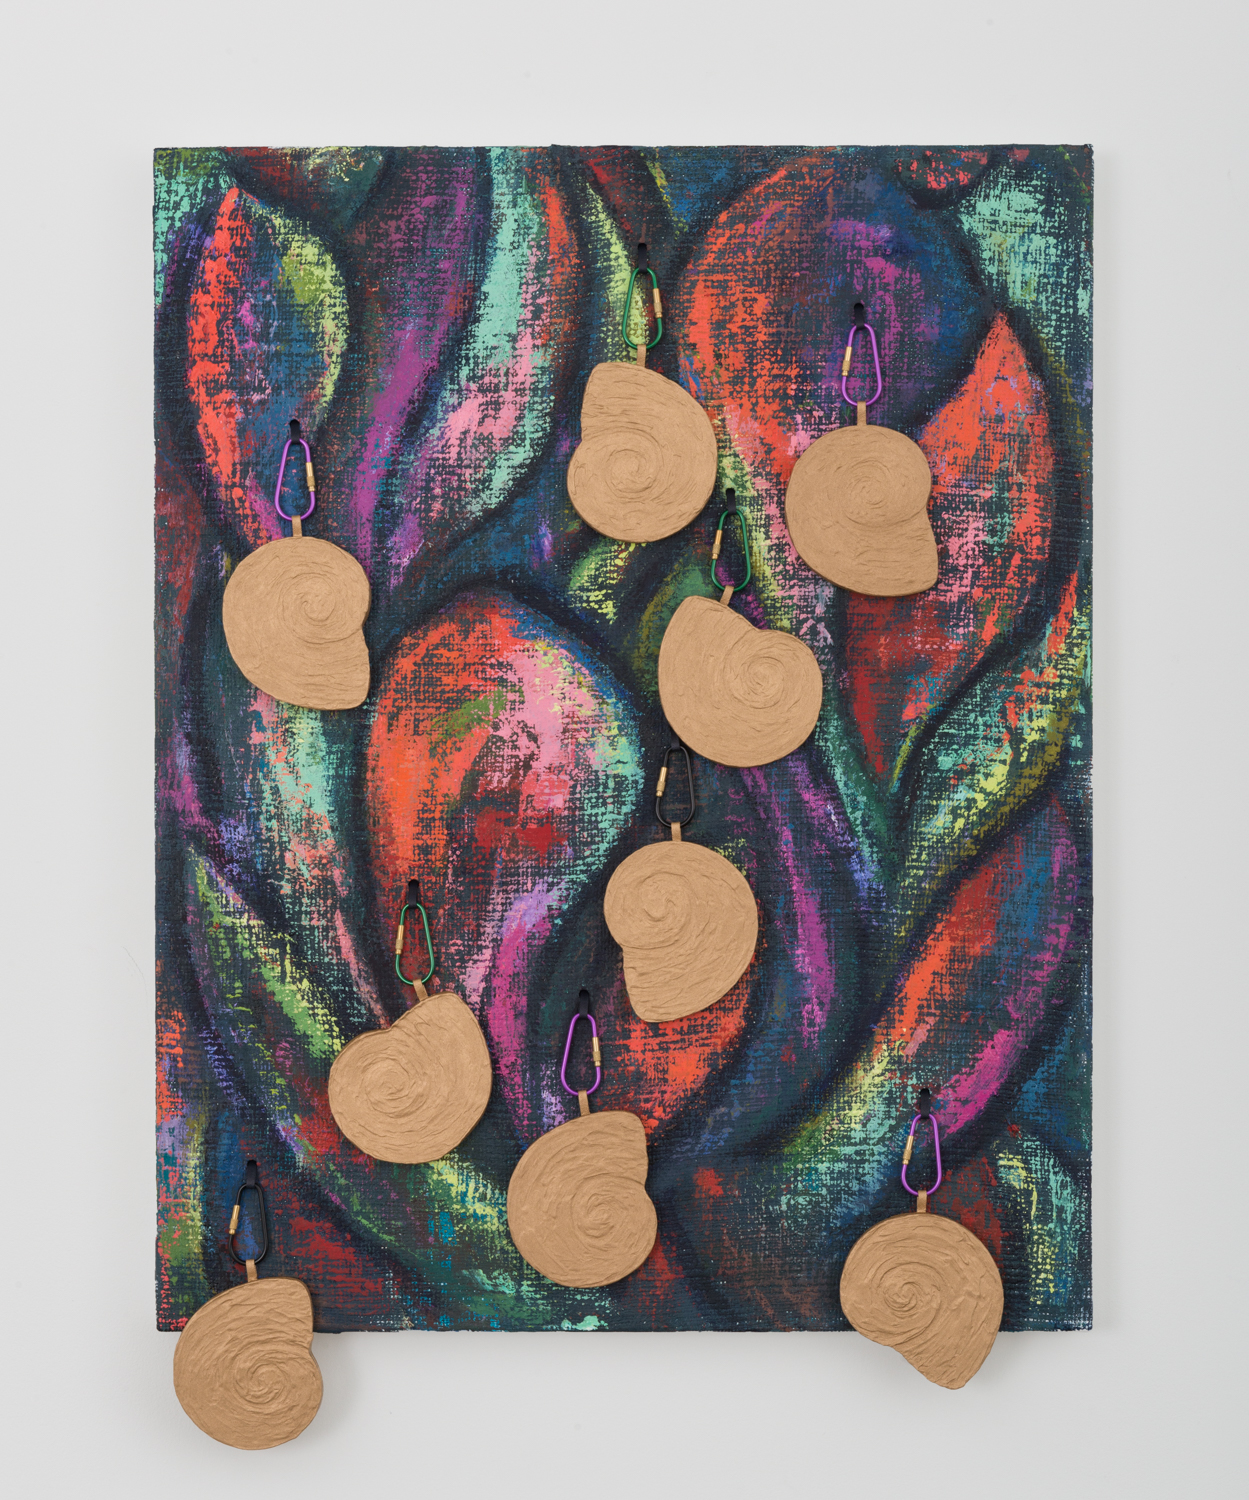 Dianna Molzan  Untitled  2016 Oil on jute, oil on canvas and wood, and carabiners 33h x 23 ½w x 2 ⅒d in DM003